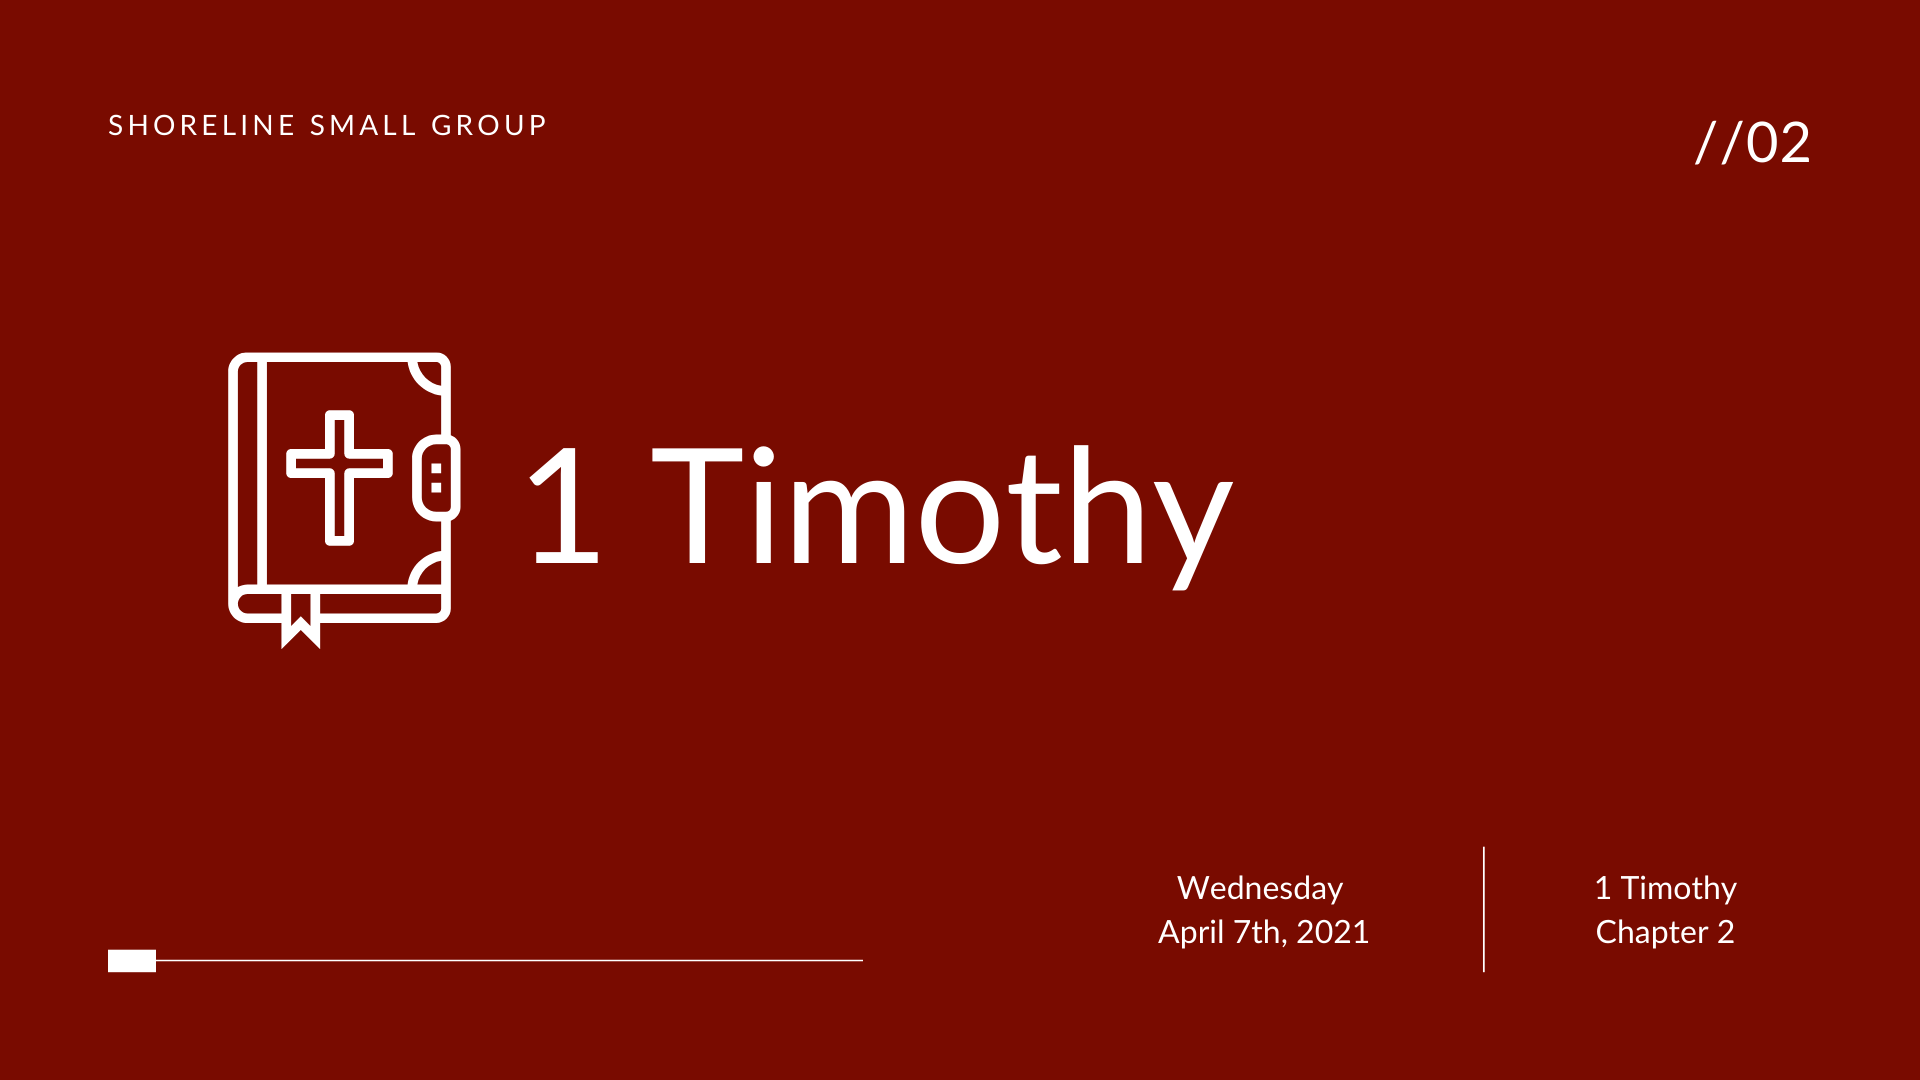 Spring 2021 Small Group – 1 Timothy 4